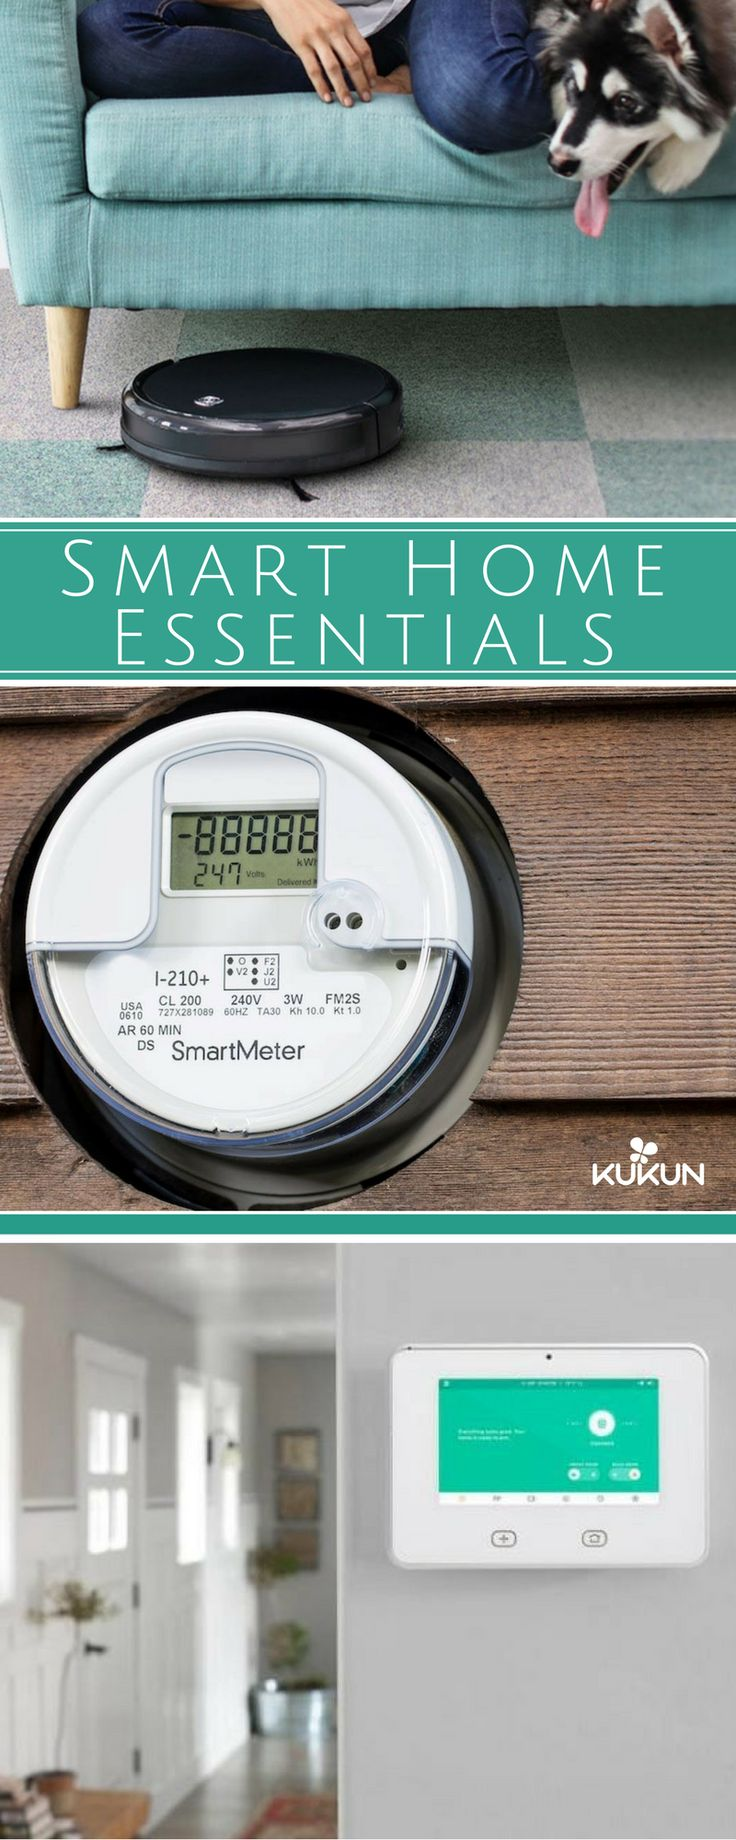 Smart homes with automation technologies are becoming a trend in housing, the latest technologies offer what most people want nowadays: Convenience. Check out some of these gadgets ALL smart homes must have! [Smart Homes, Gadgets, Technology In Home, Robovac, Smart Meters, Smart Security Alarms, Robot Vacuum Cleaners, High Tech Essentials]